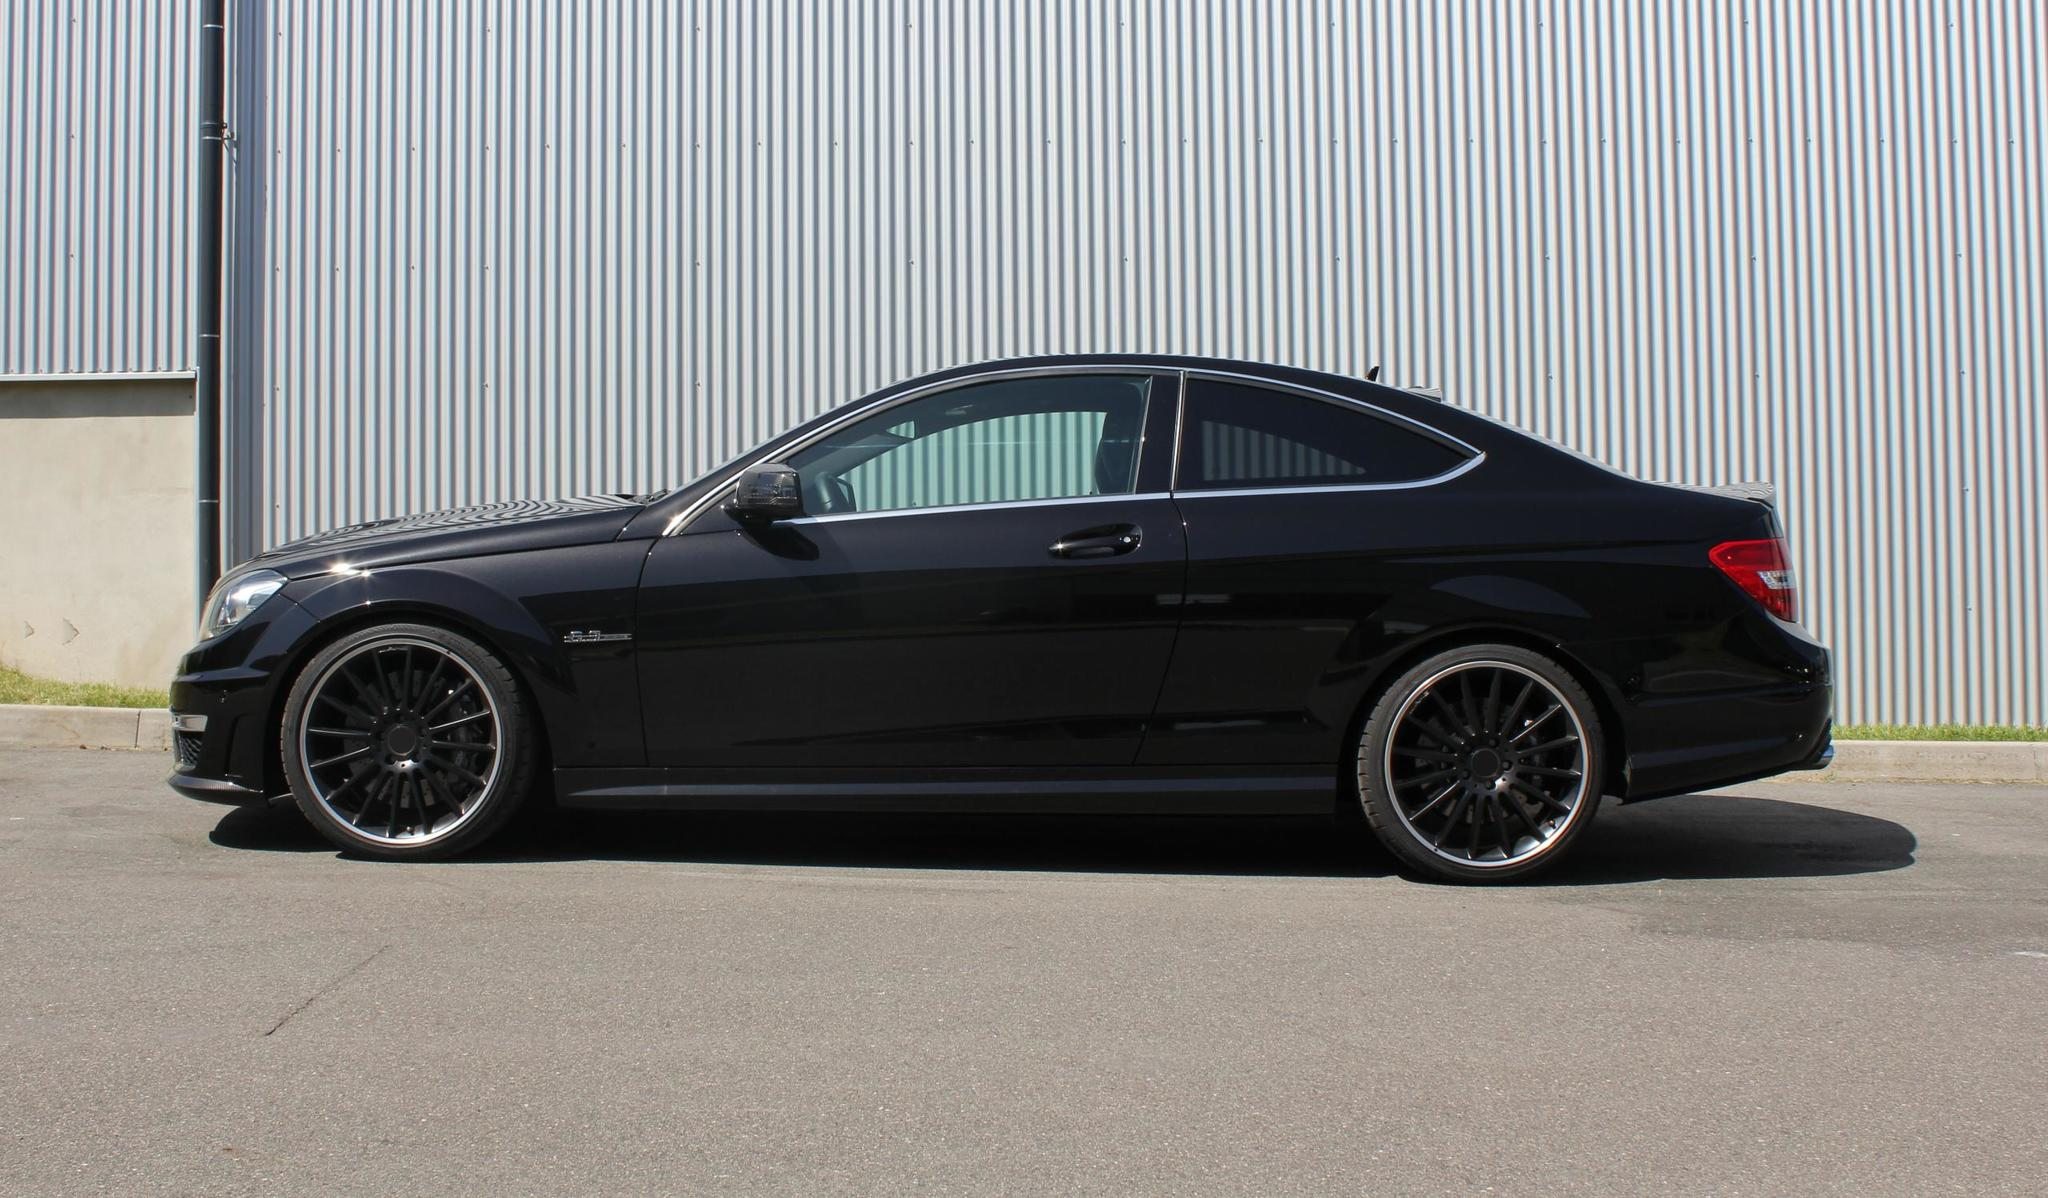 Mansory body kit for Mercedes-Benz C-class carbon